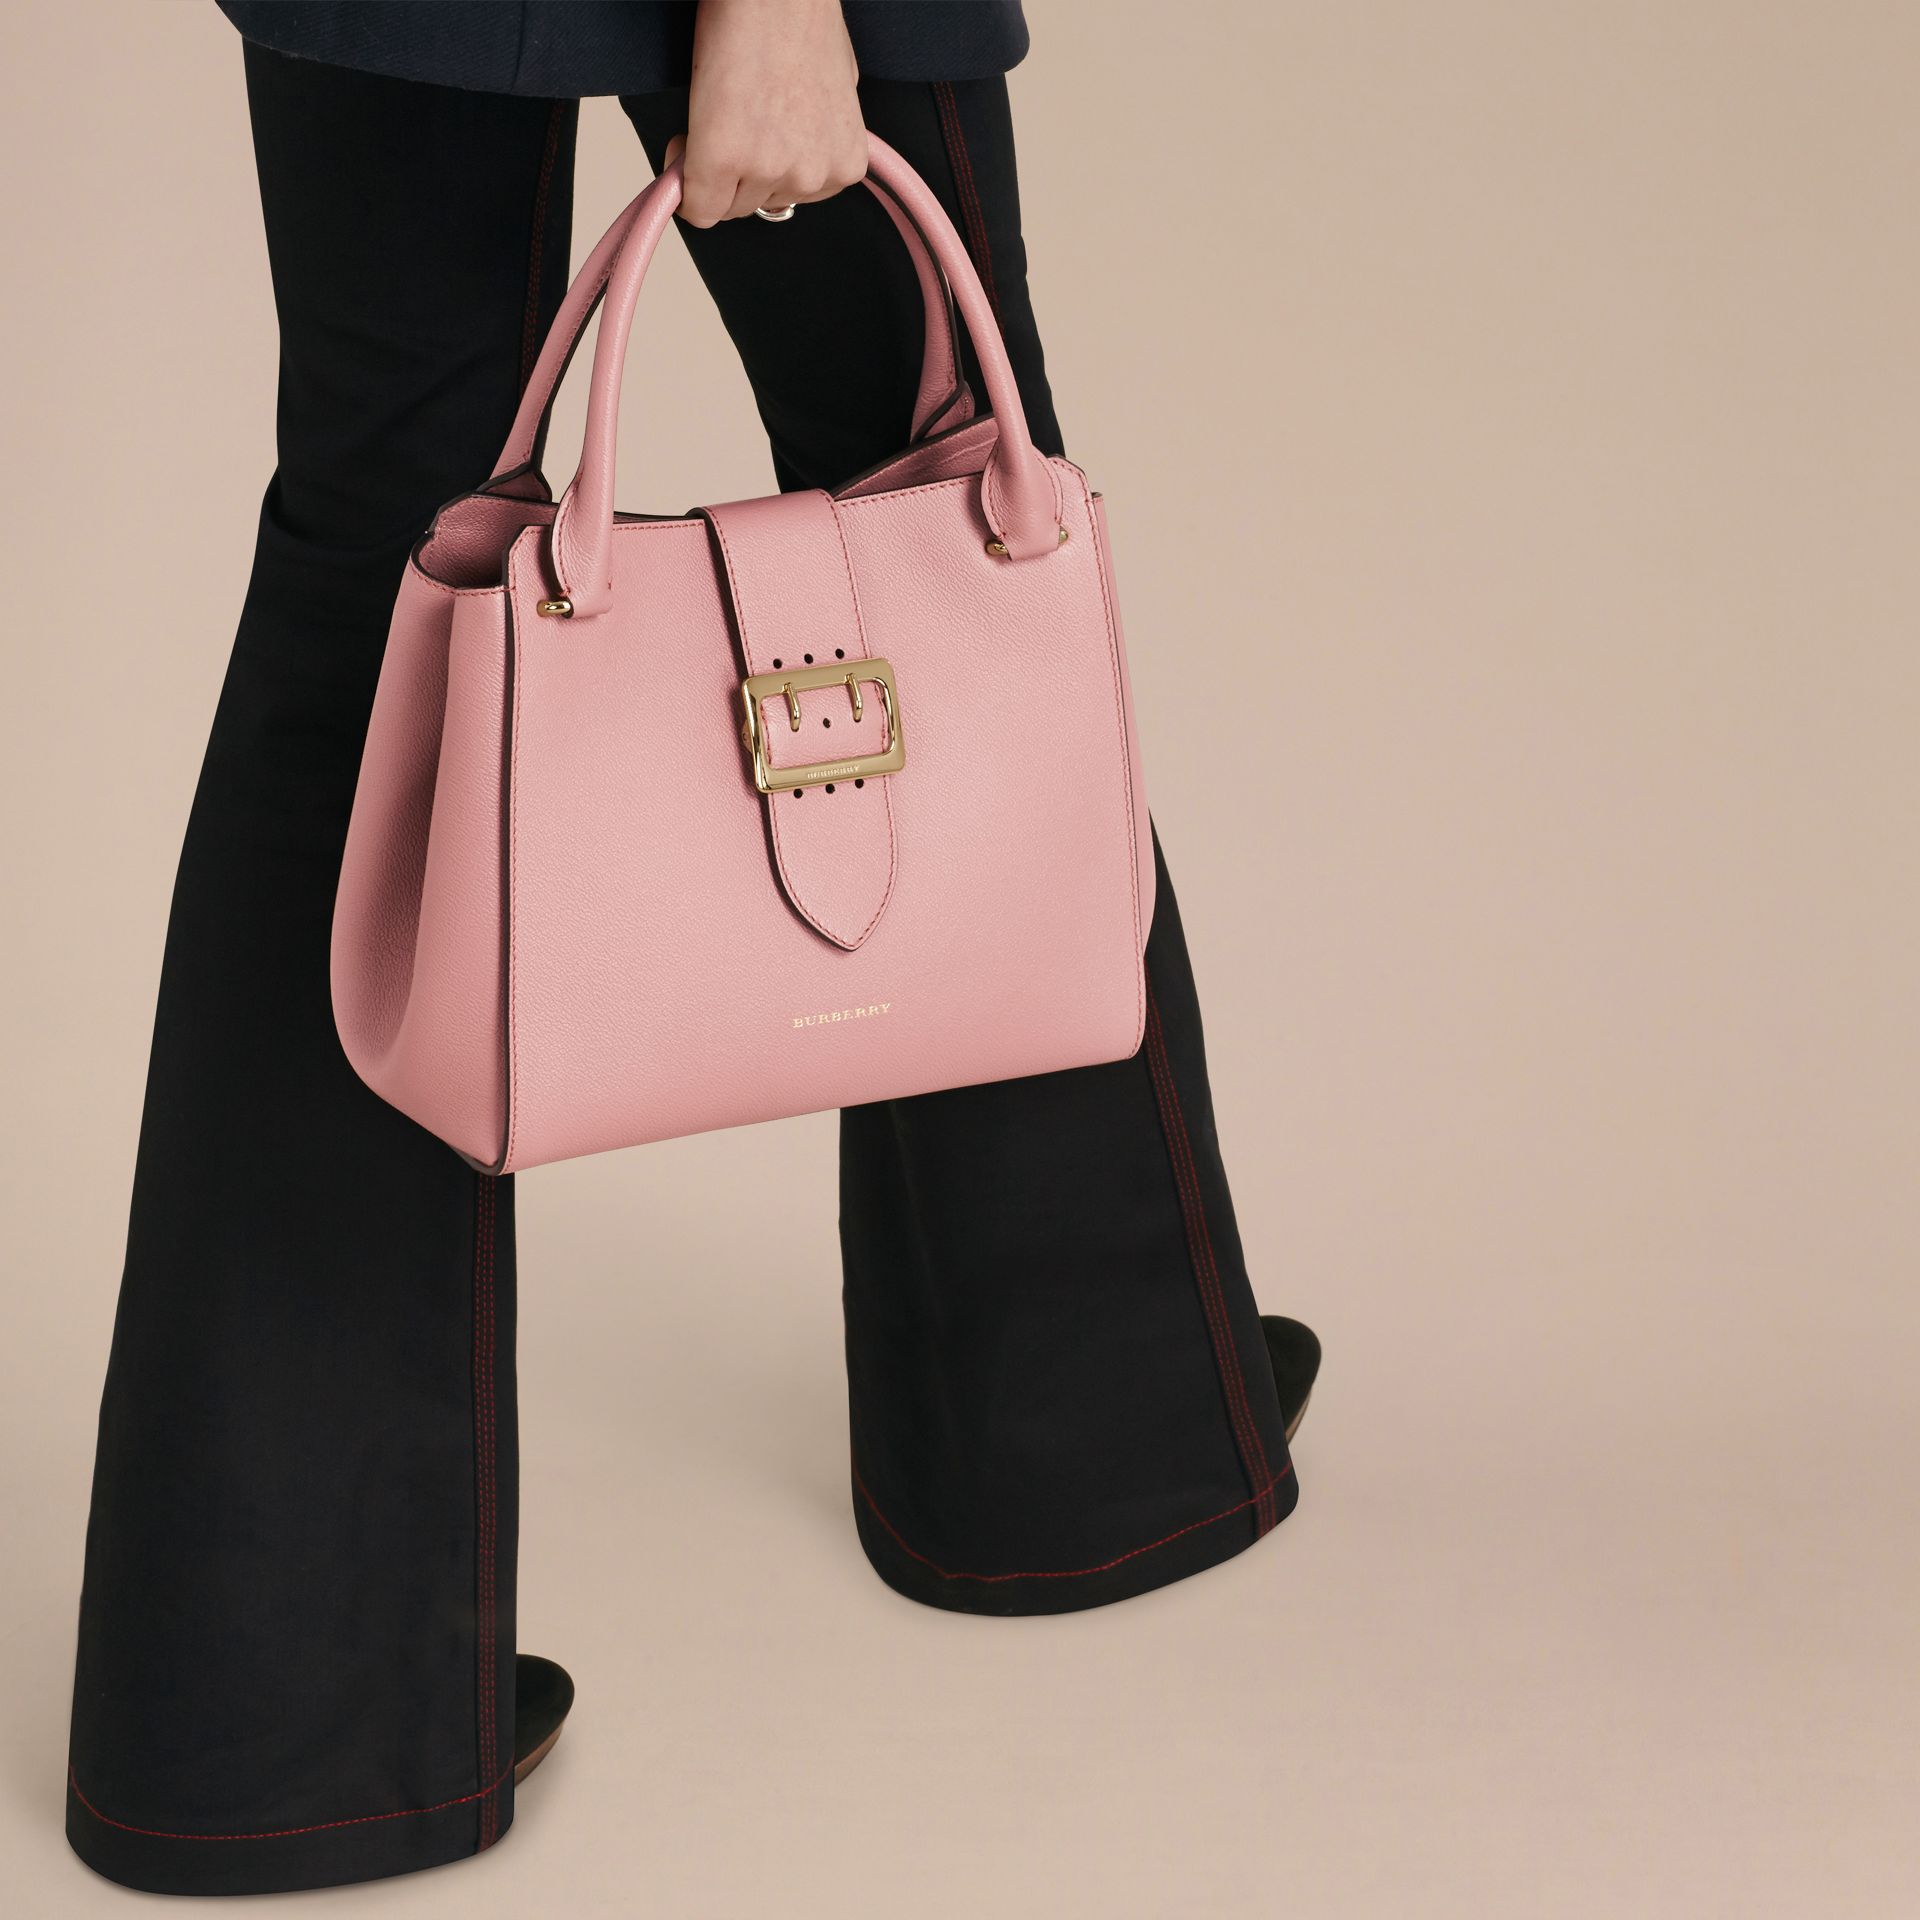 The Medium Buckle Tote in Grainy Leather in Dusty Pink - Women | Burberry - gallery image 3